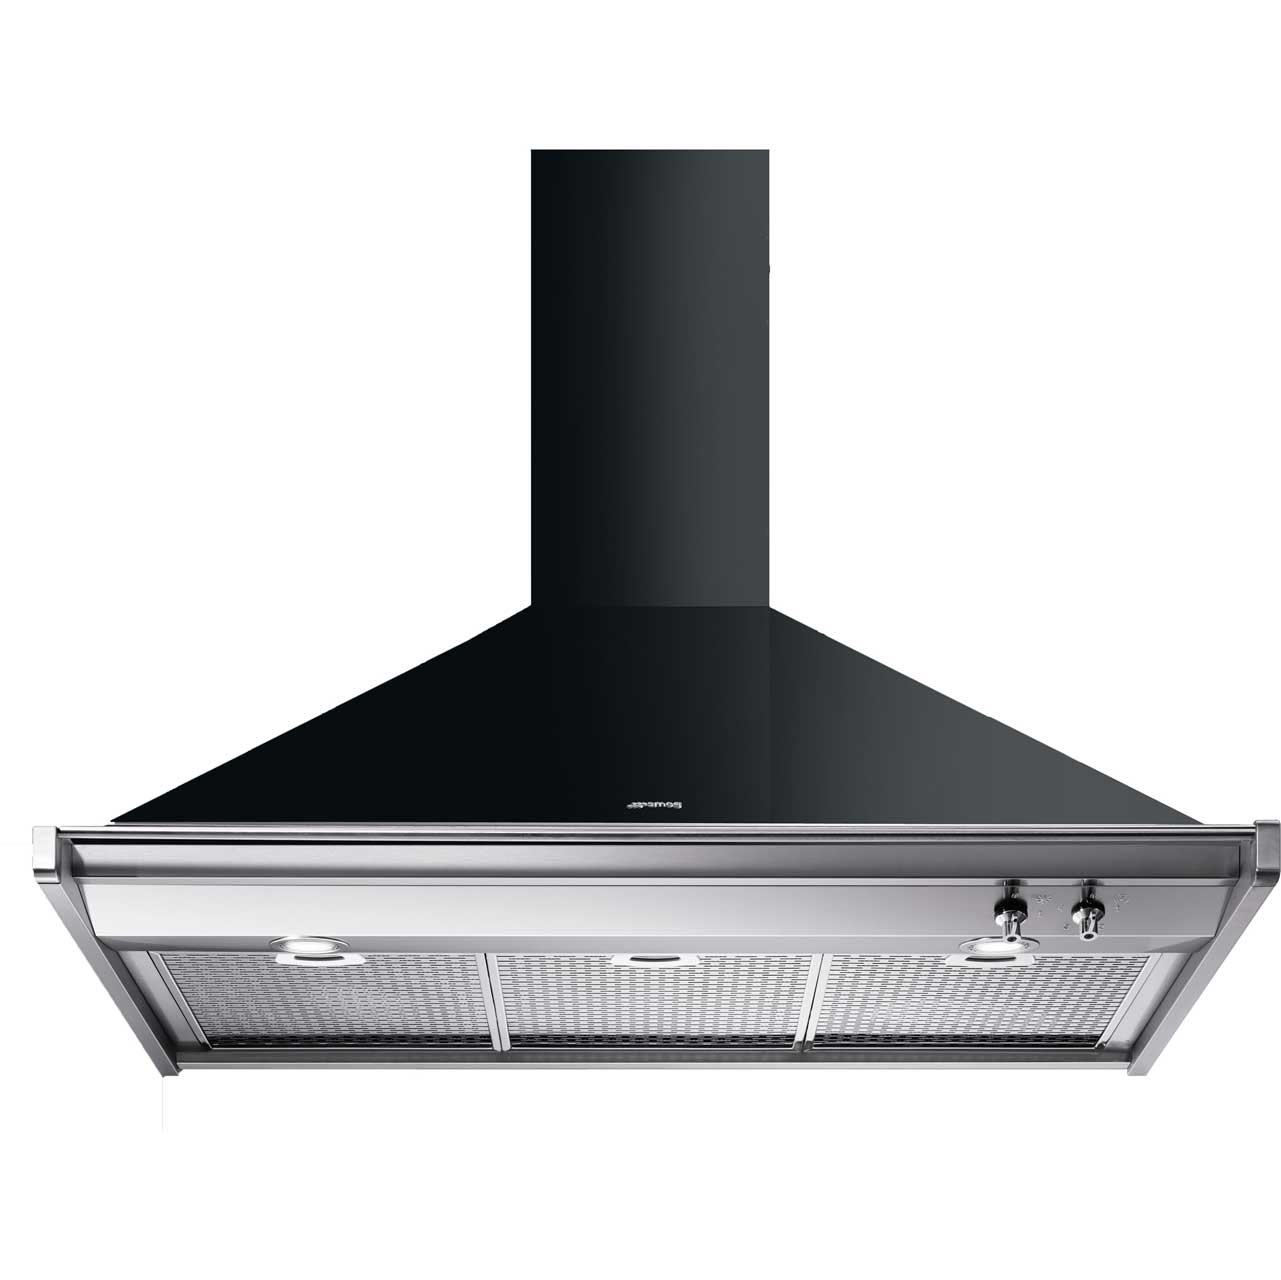 Smeg Opera KD100NE 100 cm Chimney Cooker Hood - Black